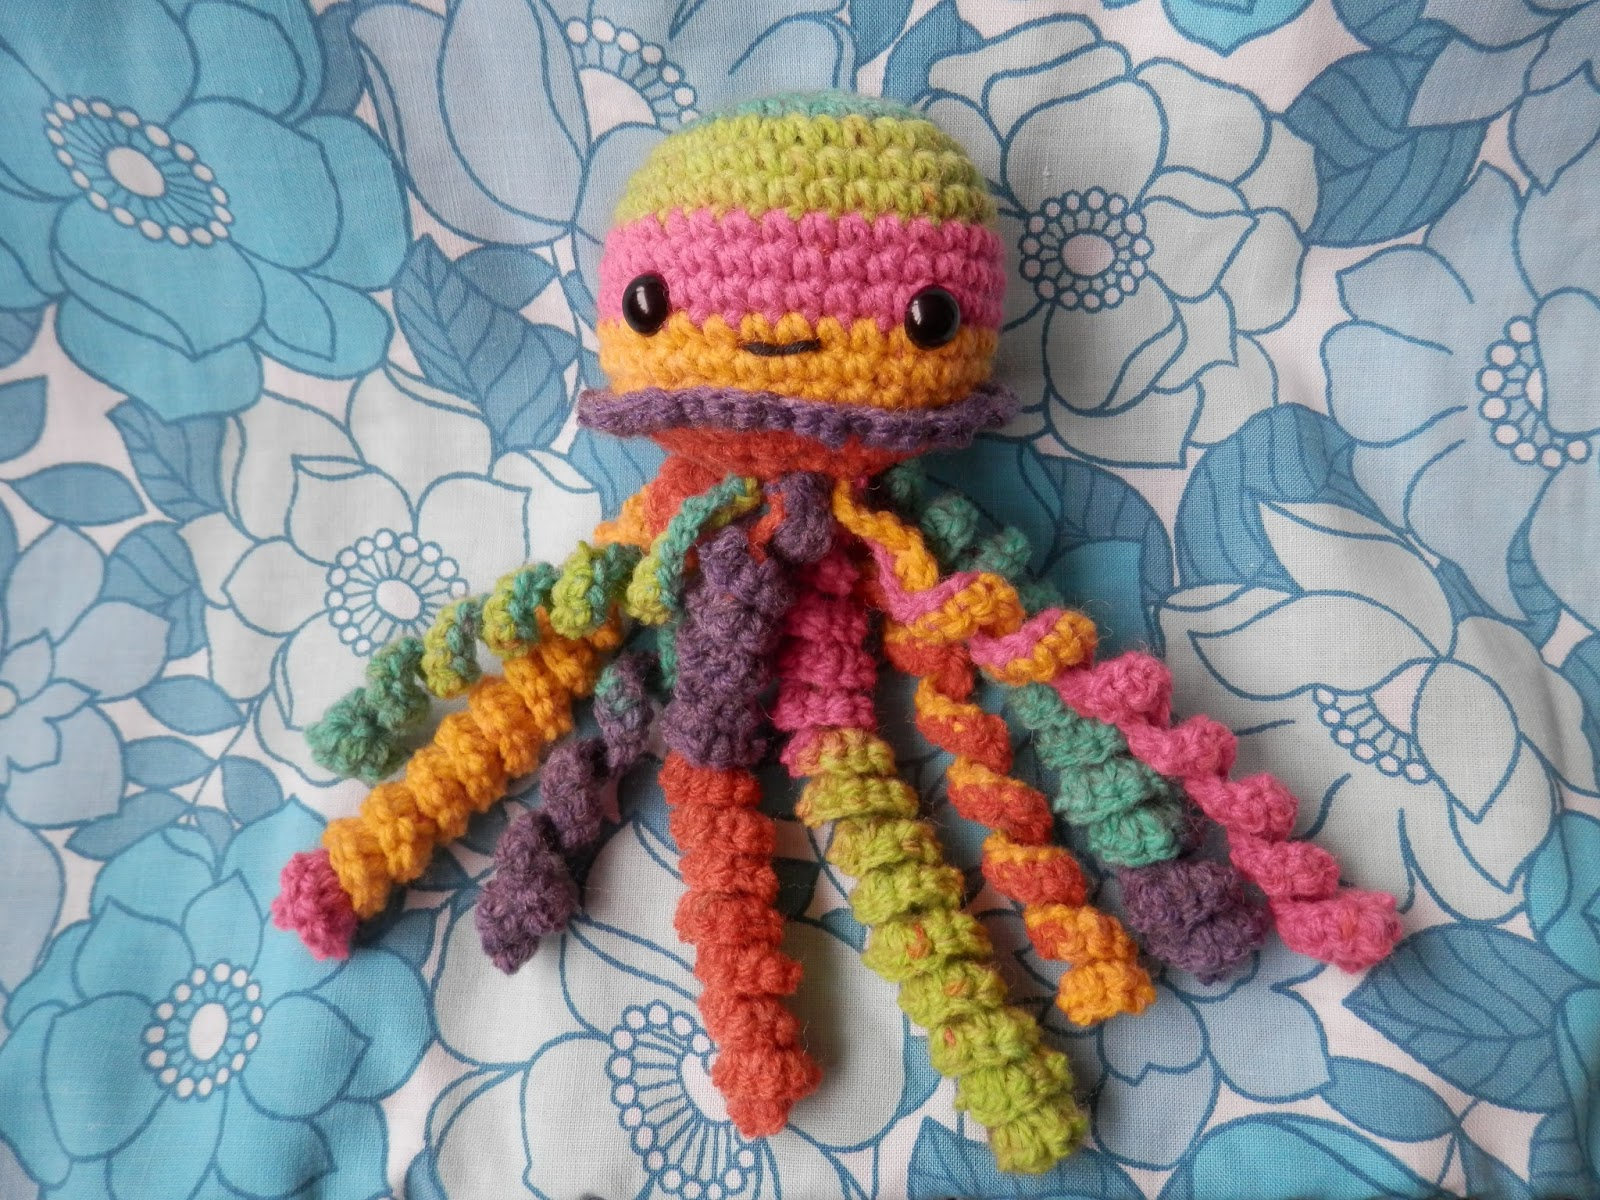 Second Hand Susie: I made a thing, crochet baby jellyfish.